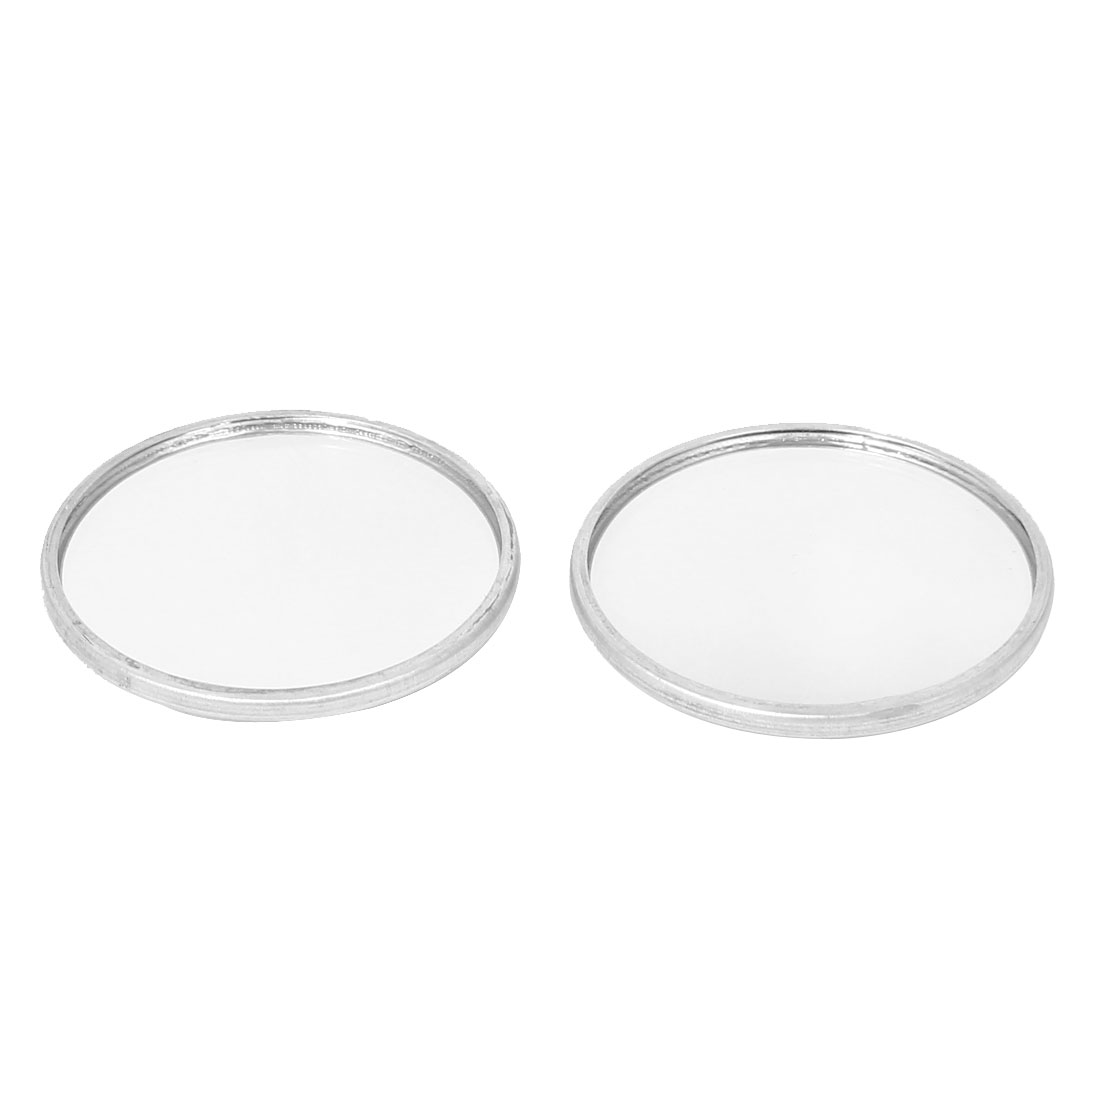 2pcs 37mm Universal Adhesive Wide Angle Convex Car Rear View Blind Spot Mirror